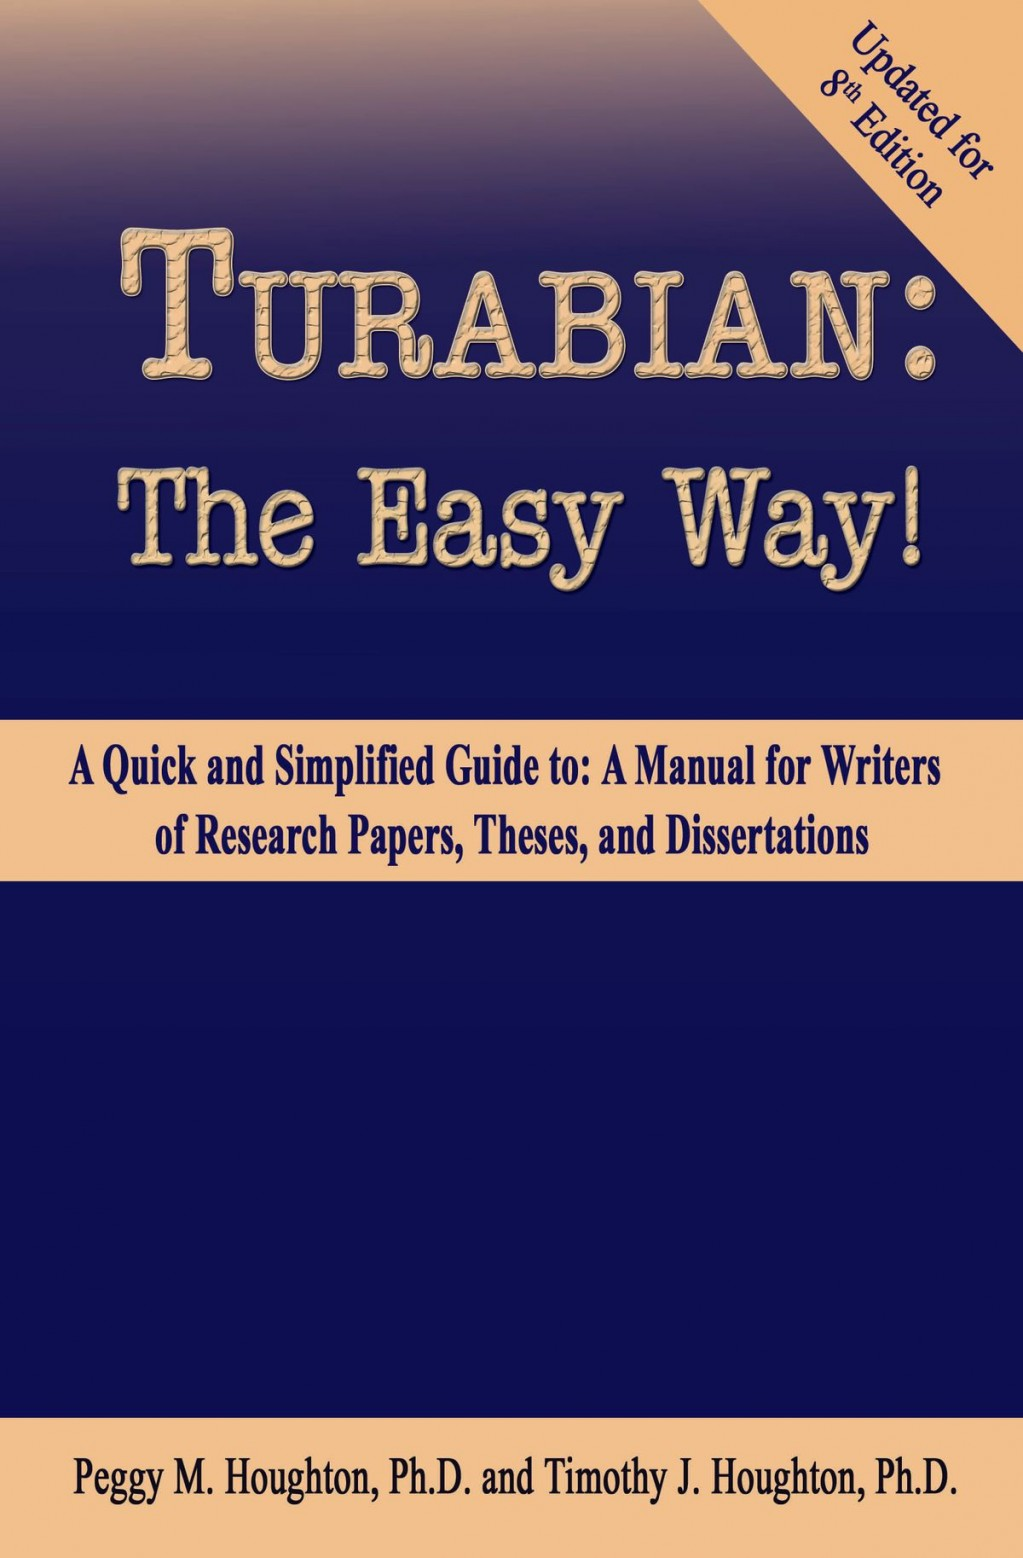 009 Manual For Writers Of Researchs Theses And Dissertations 8th Edition Turabian The Easy Way Staggering A Research Papers Pdf Large